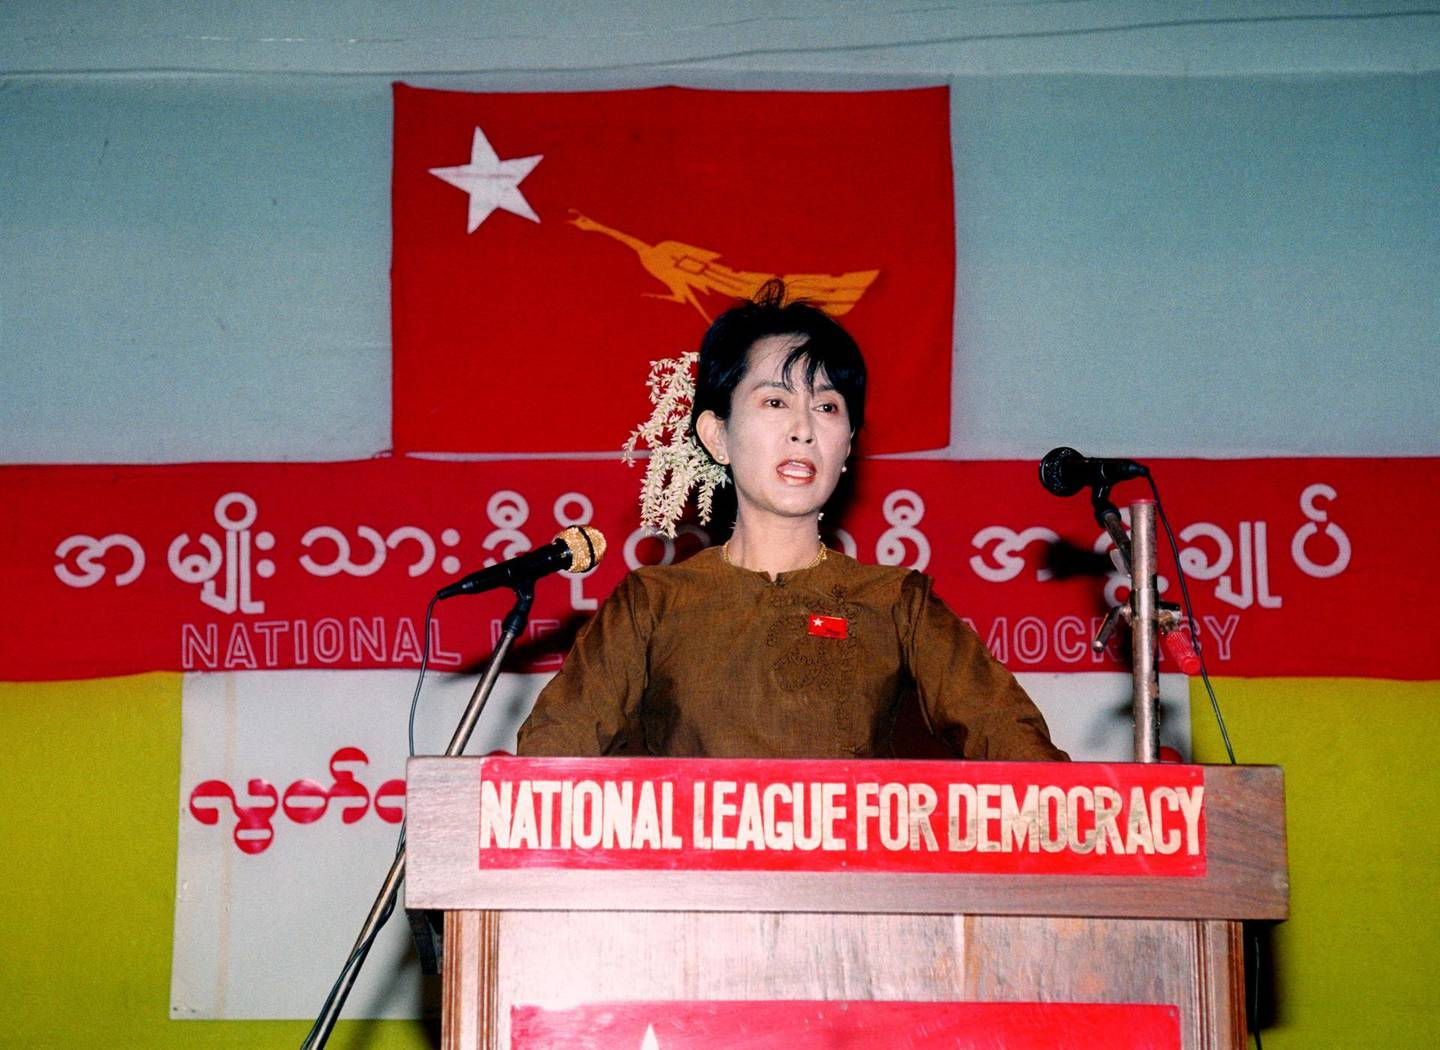 FILE PHOTO: Burmese opposition leader Aung San Suu Kyi makes a speech during the country's 49th Independence Day celebrations in a thatch-roofed meeting hall in the compound of her house in Rangoon on January 4, 1997. REUTERS/Apichart Weerawong/File Photo